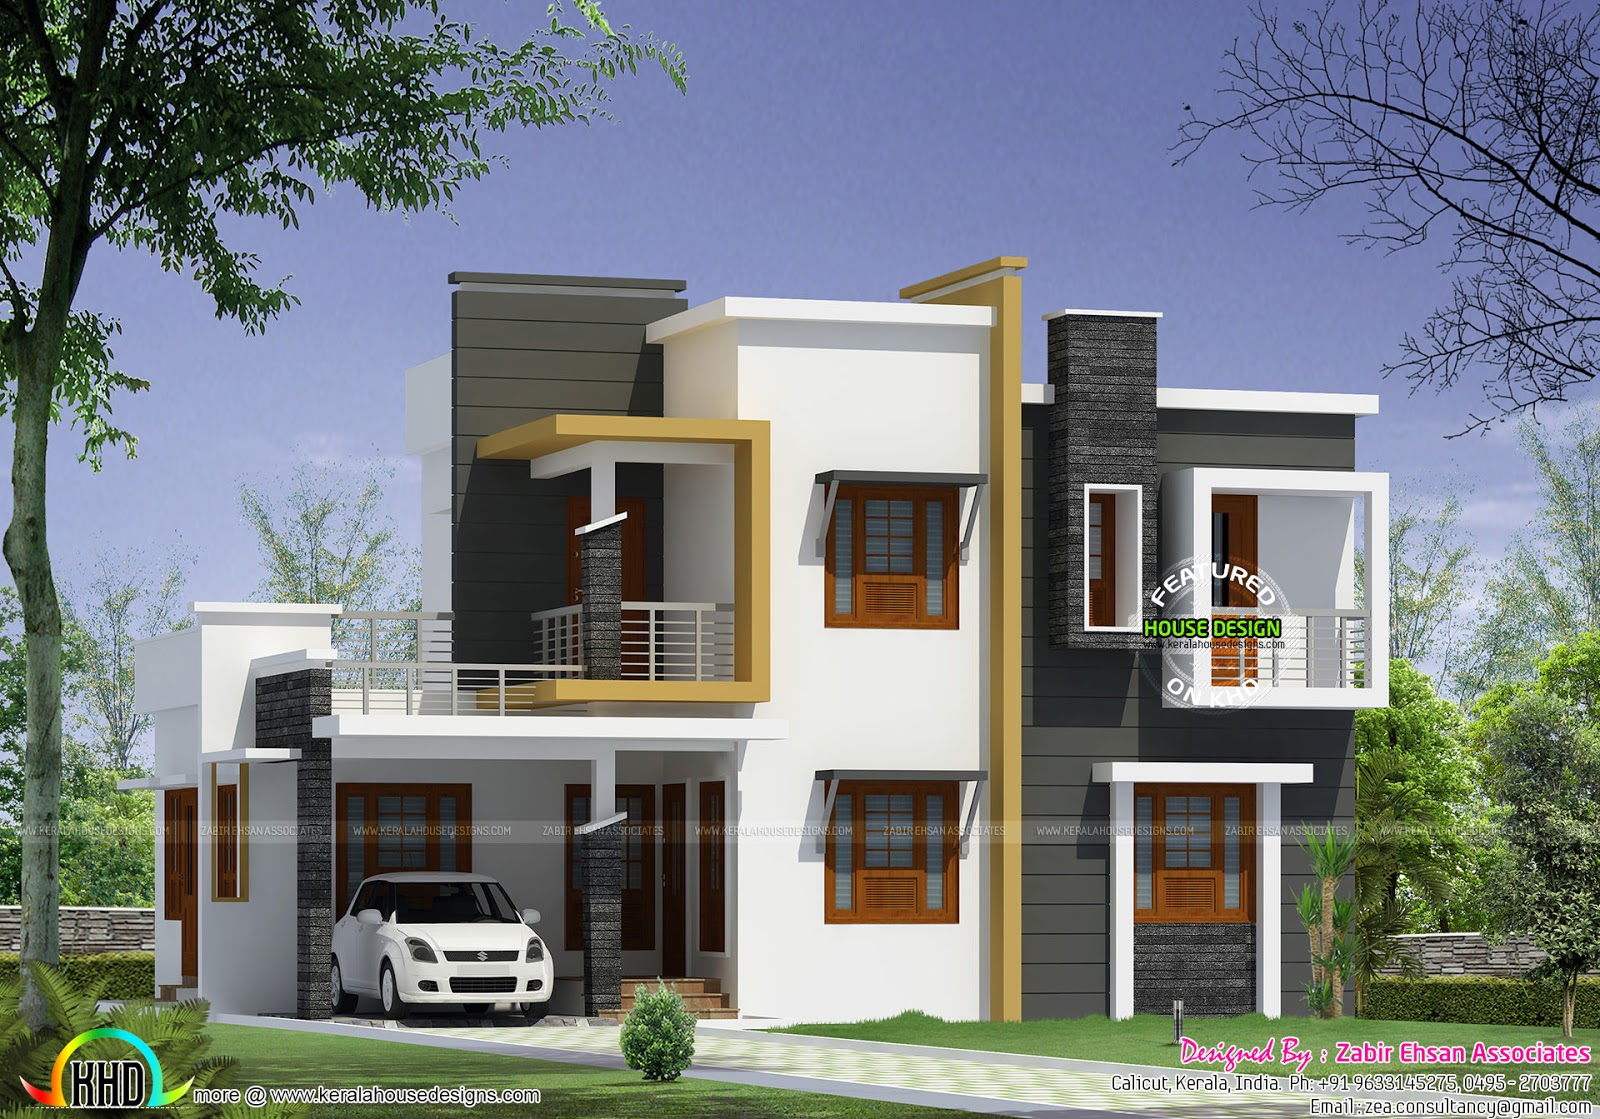 Box type modern house plan kerala home design and floor Types of modern houses